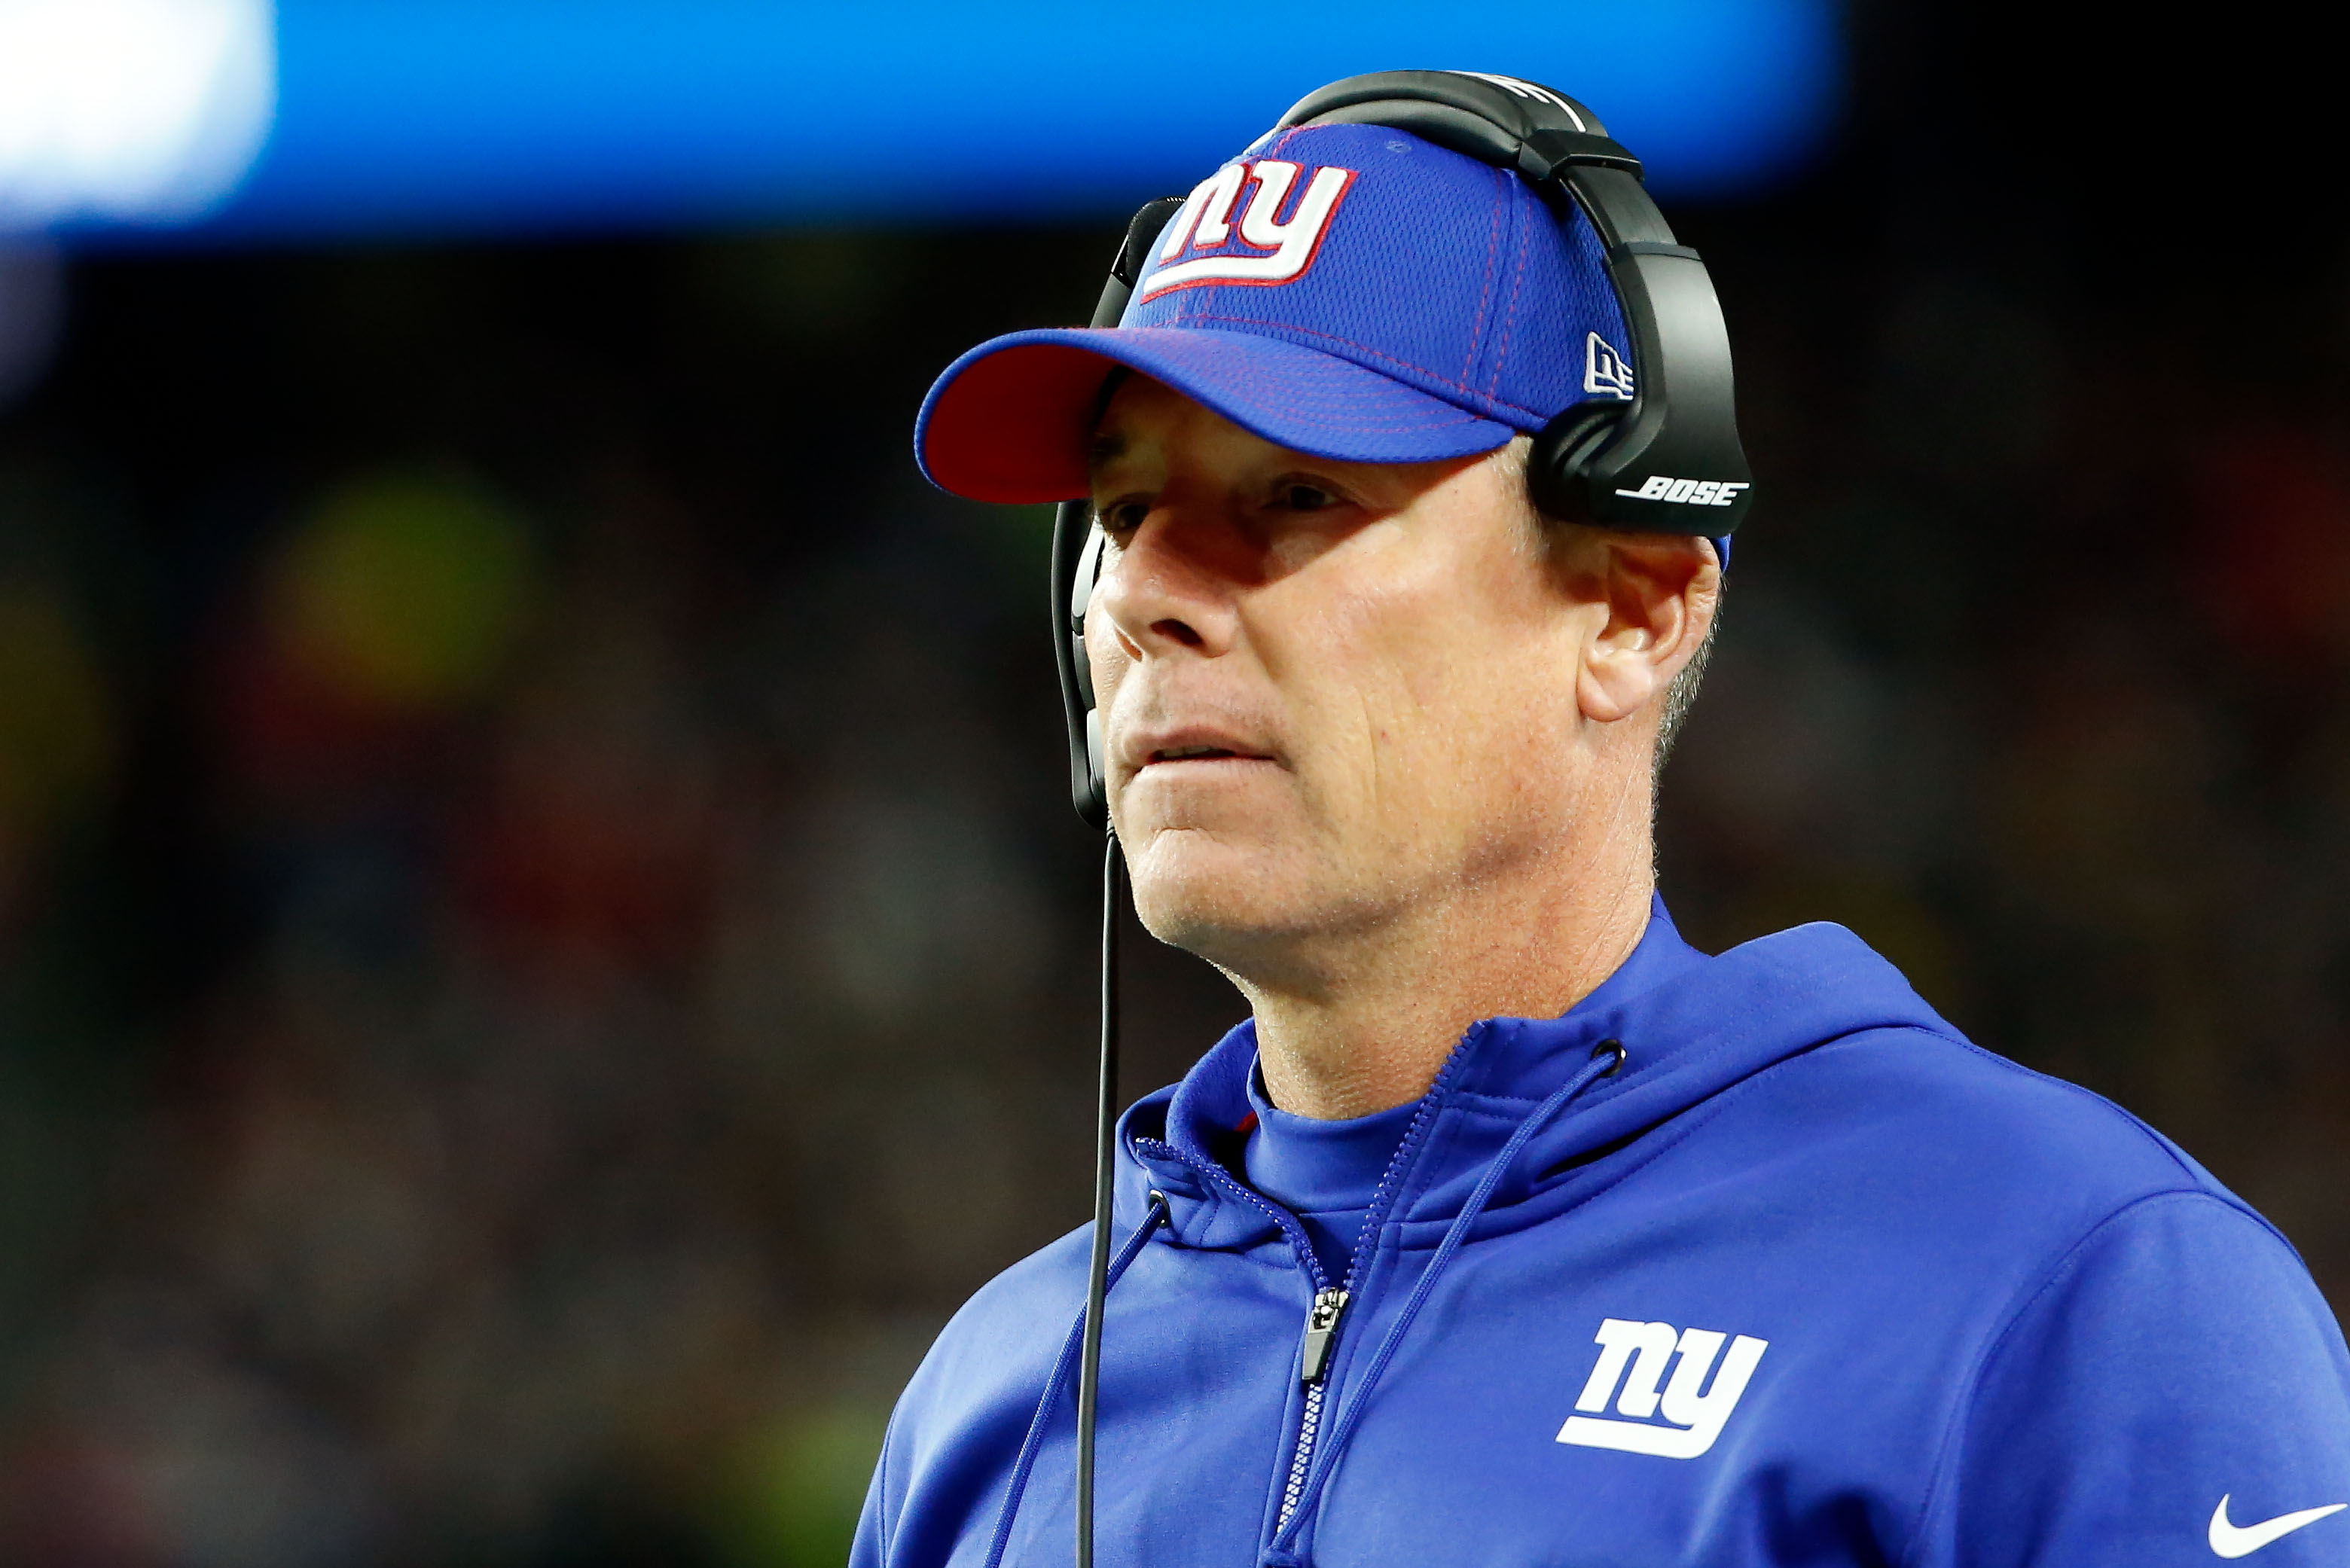 NFL: New York Giants at New England Patriots